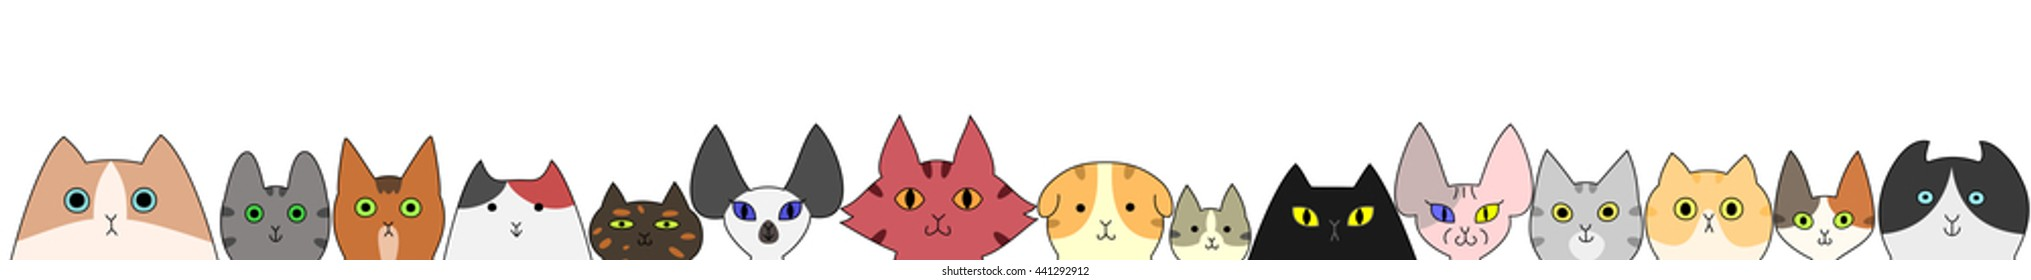 Cat Banner Images, Stock Photos & Vectors | Shutterstock